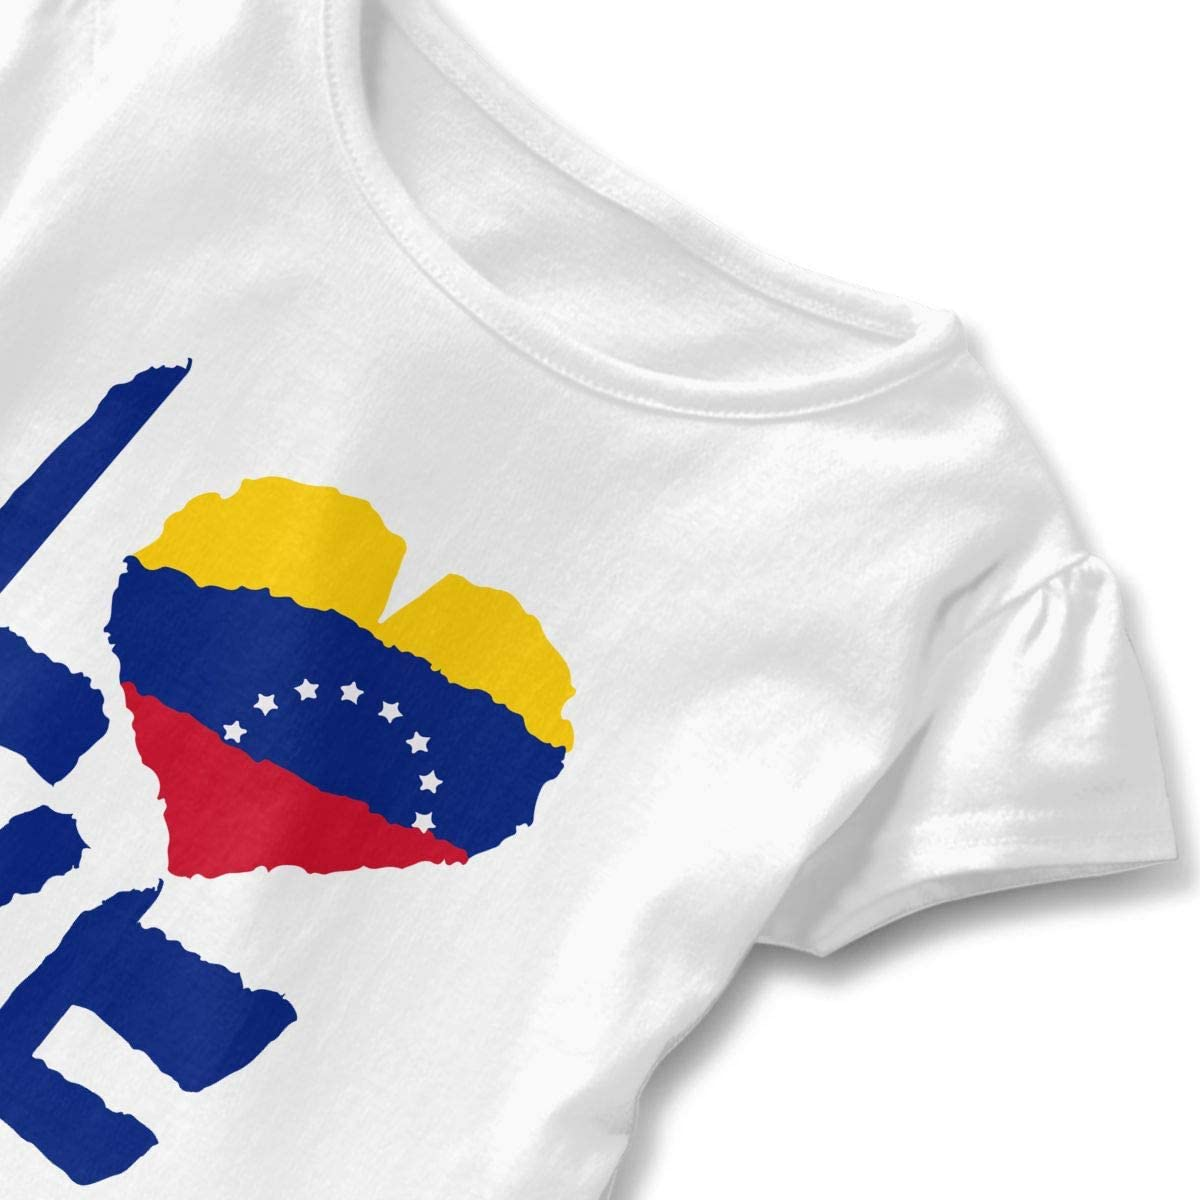 HYBDX9T Toddler Baby Girl Venezuela Flag Funny Short Sleeve Cotton T Shirts Basic Tops Tee Clothes